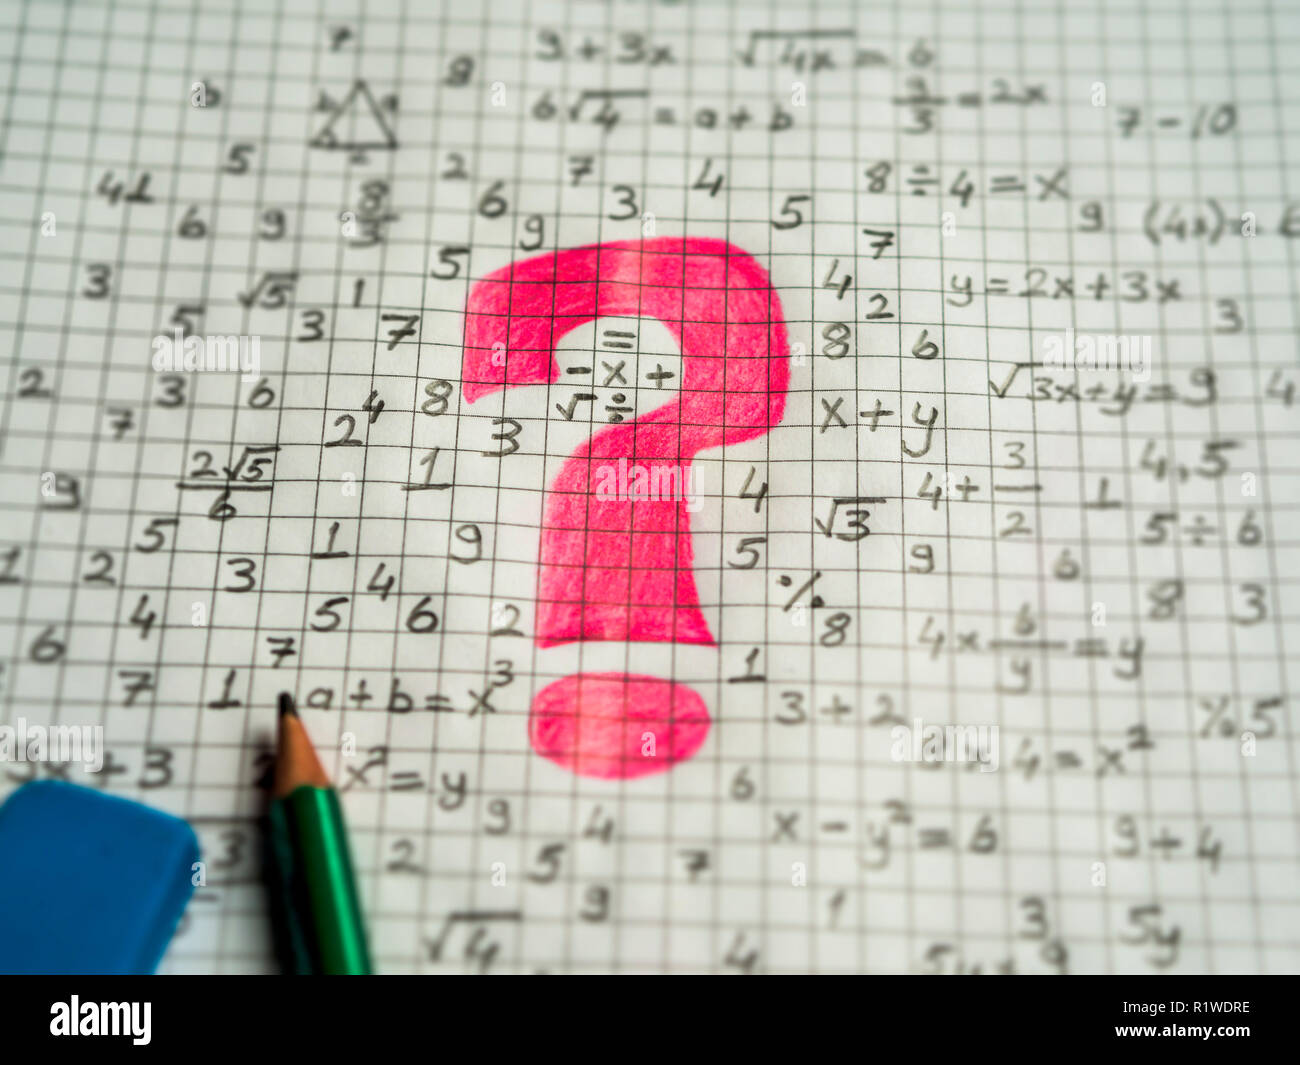 math problem solving consept visual. mathematical signs and red question mark Stock Photo